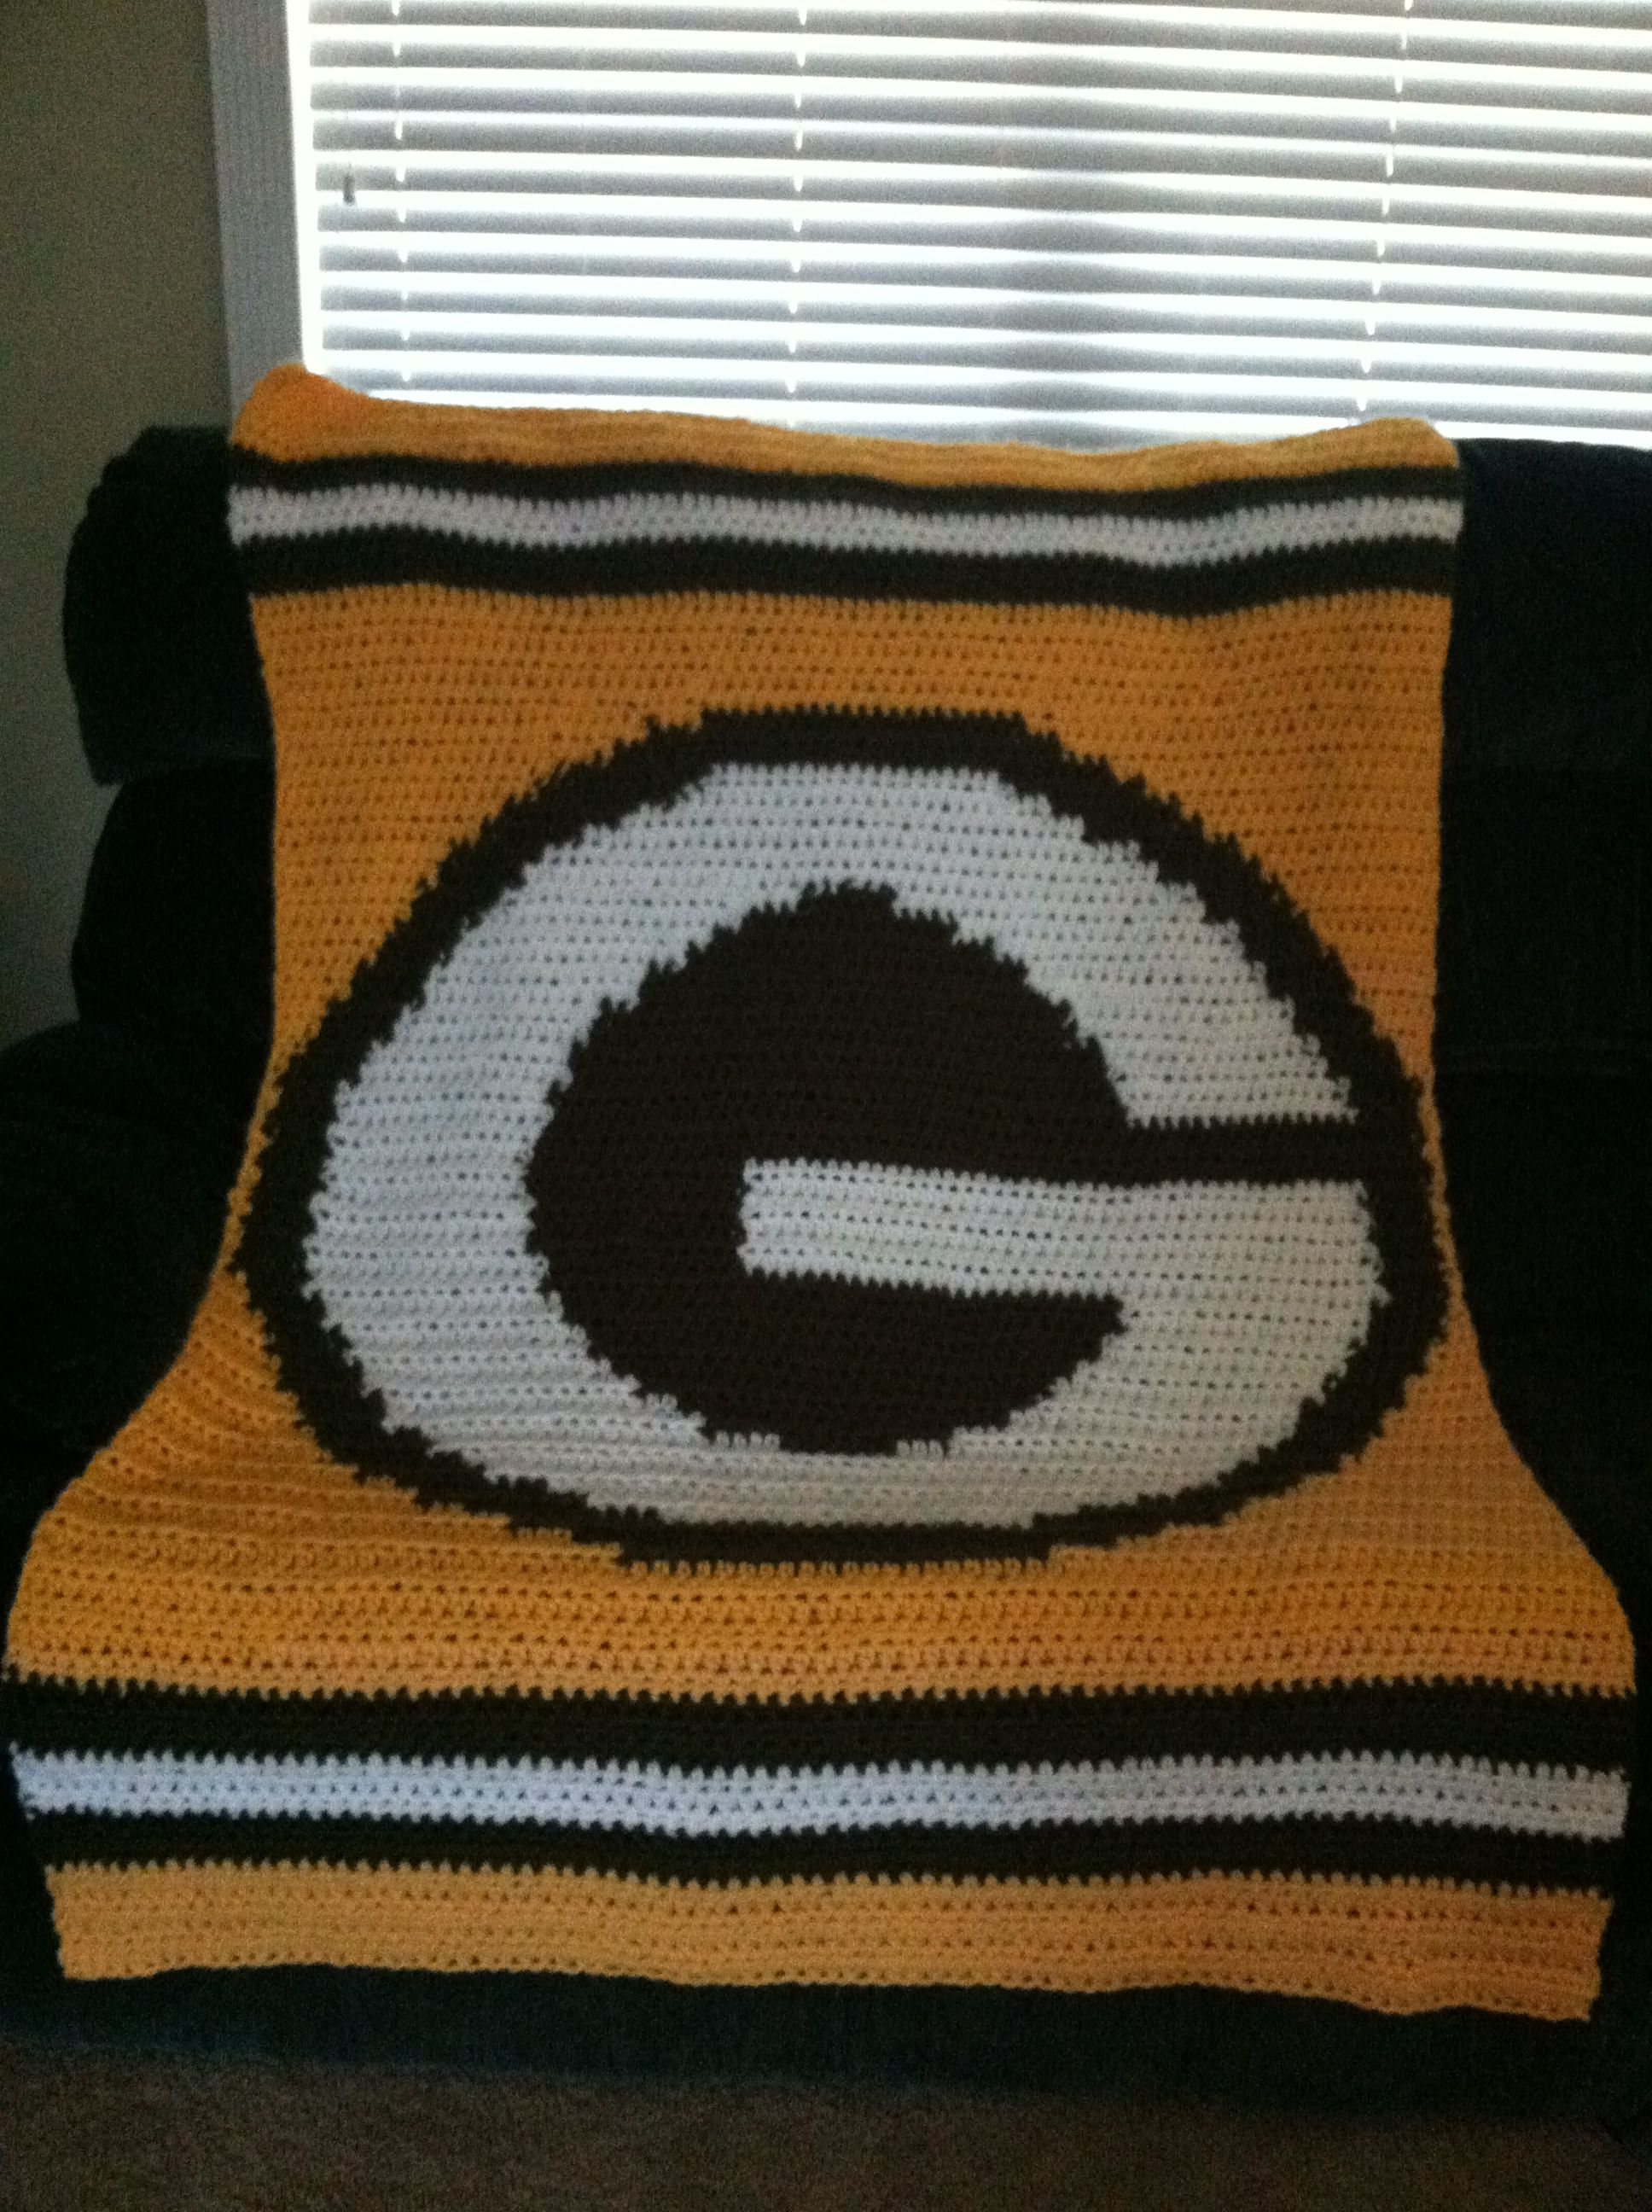 Green Bay Packers Crochet Blanket I Designed And Crocheted For A Dear Friend Who Is A Fan Afghan Crochet Patterns Baby Blanket Crochet Crotchet Patterns